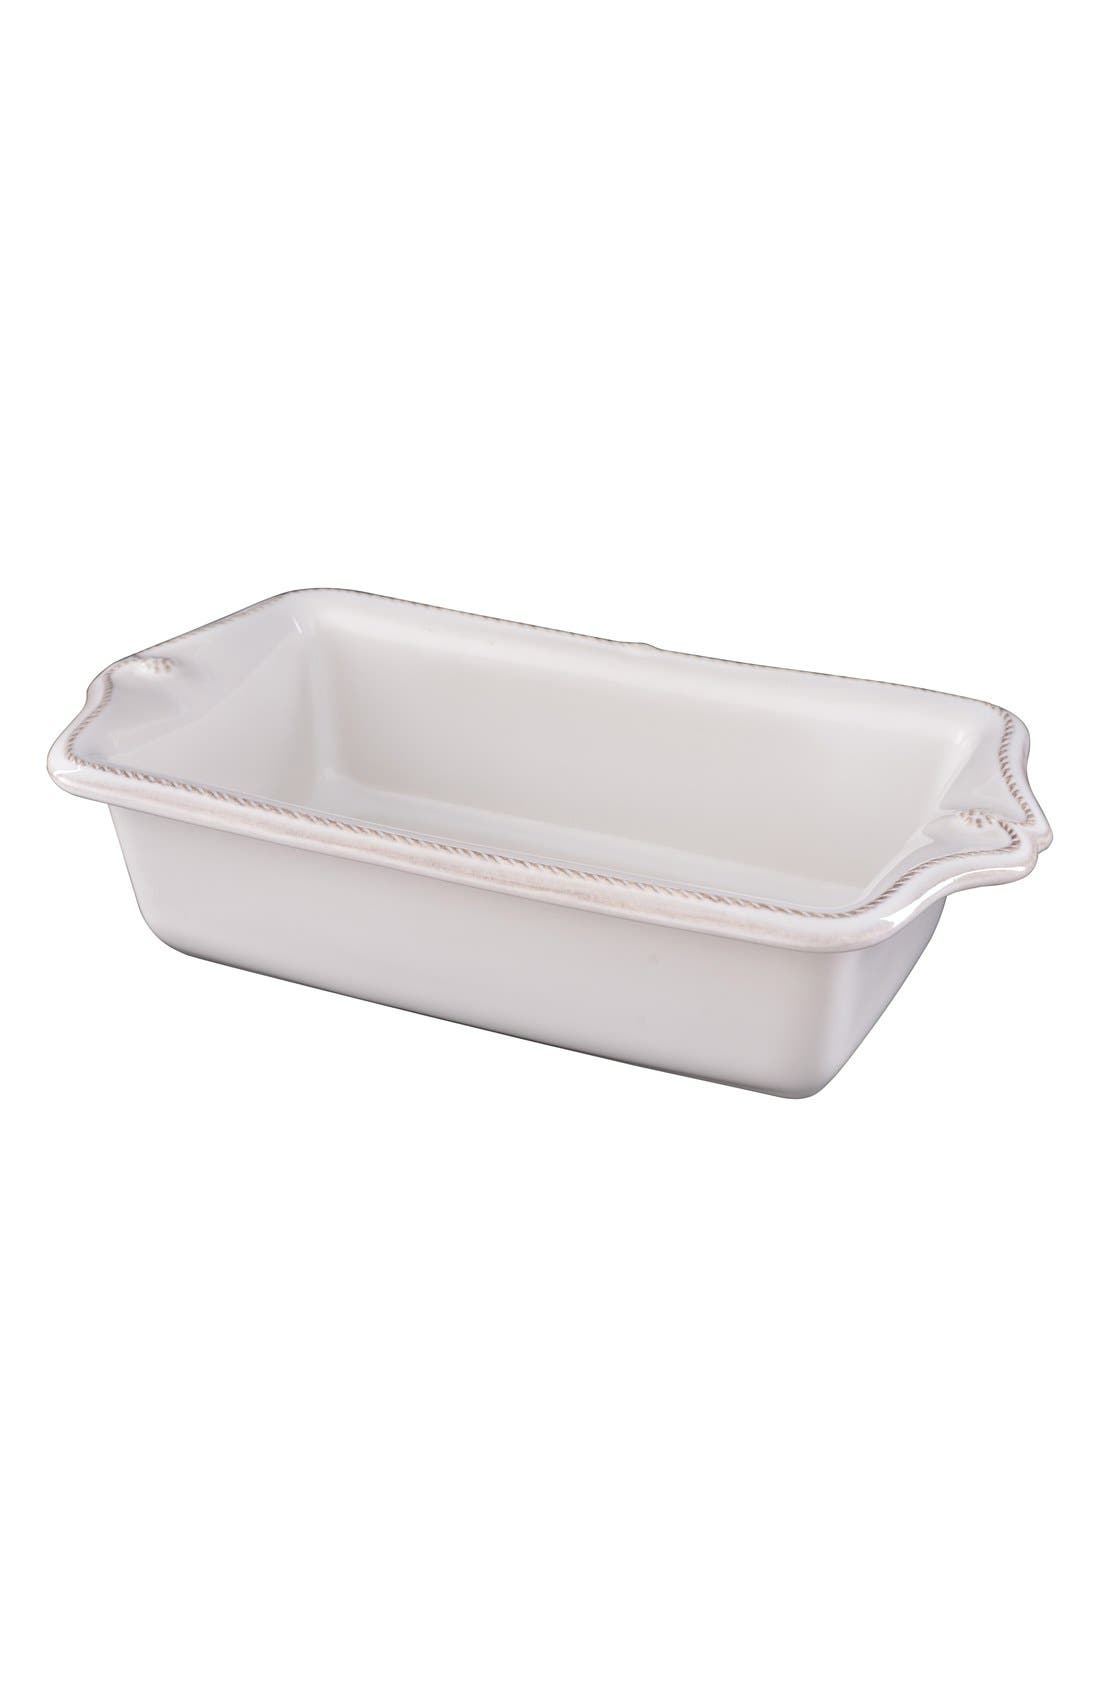 'Berry and Thread' Ceramic Loaf Pan,                         Main,                         color, WHITEWASH